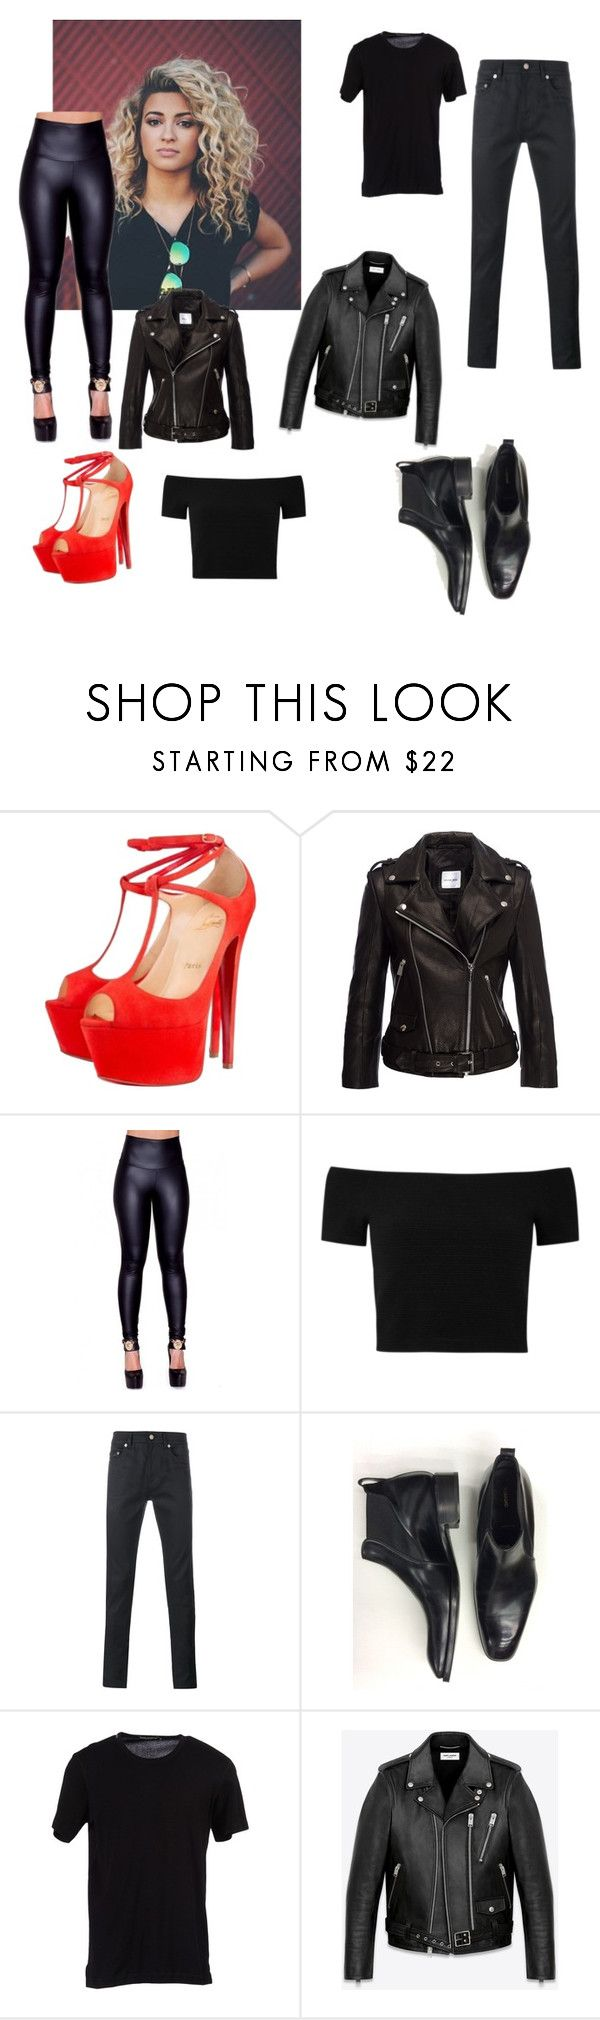 """Danny Zuko and Sandy costume"" by mrs-eazy ❤ liked on Polyvore featuring Christian Louboutin, Alice + Olivia, Yves Saint Laurent, Tom Ford and Dolce&Gabbana"